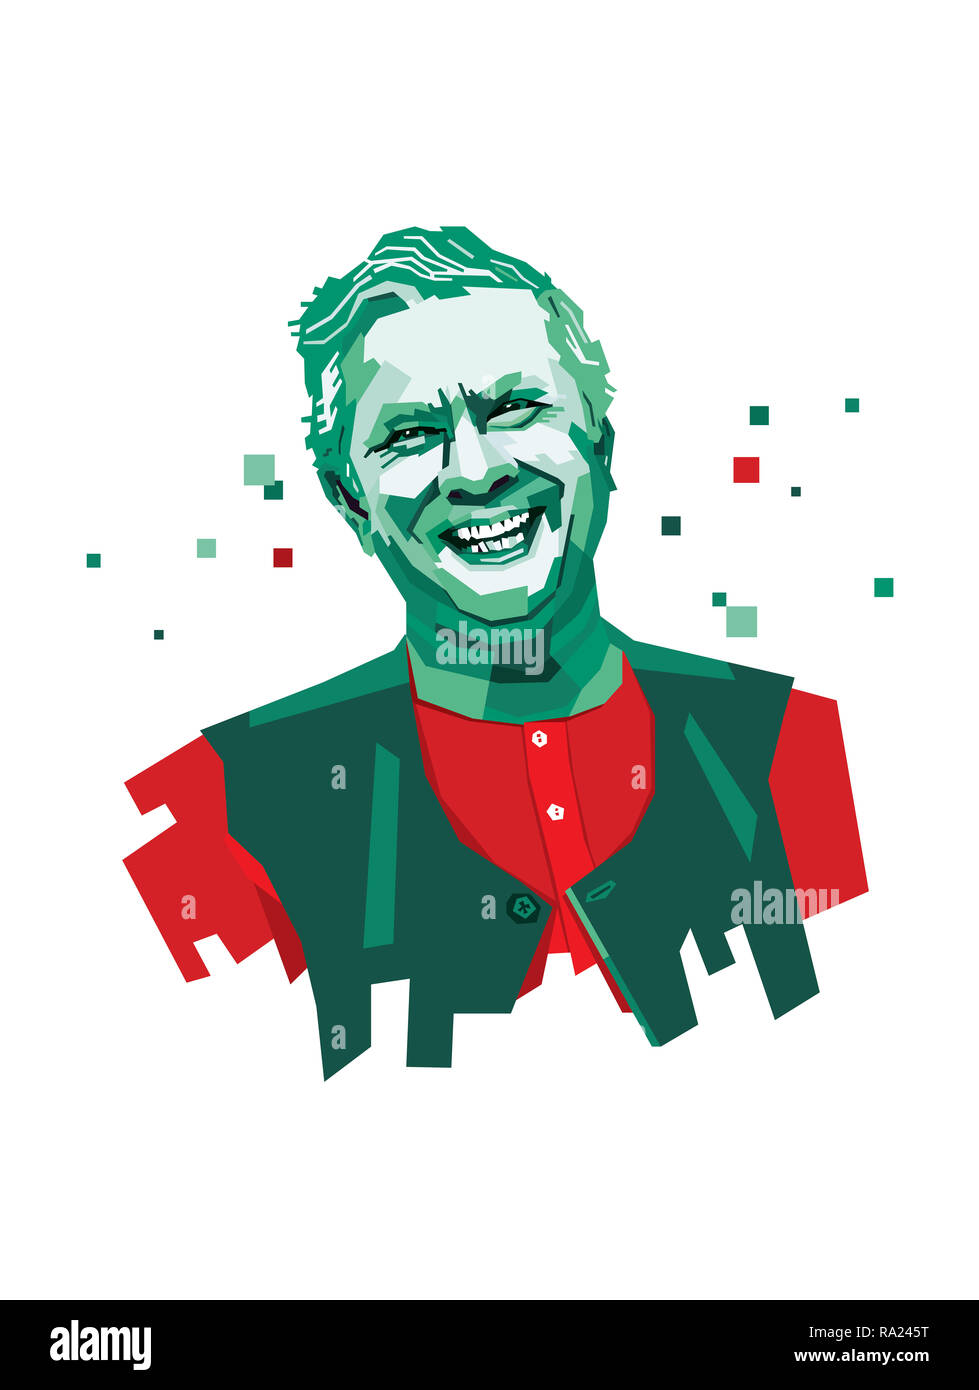 October 20, 2006: A vector illustration of a portrait of Nobel Laureate, Microfinance, and Social Business Pioneer Muhammad Yunus. - Stock Image